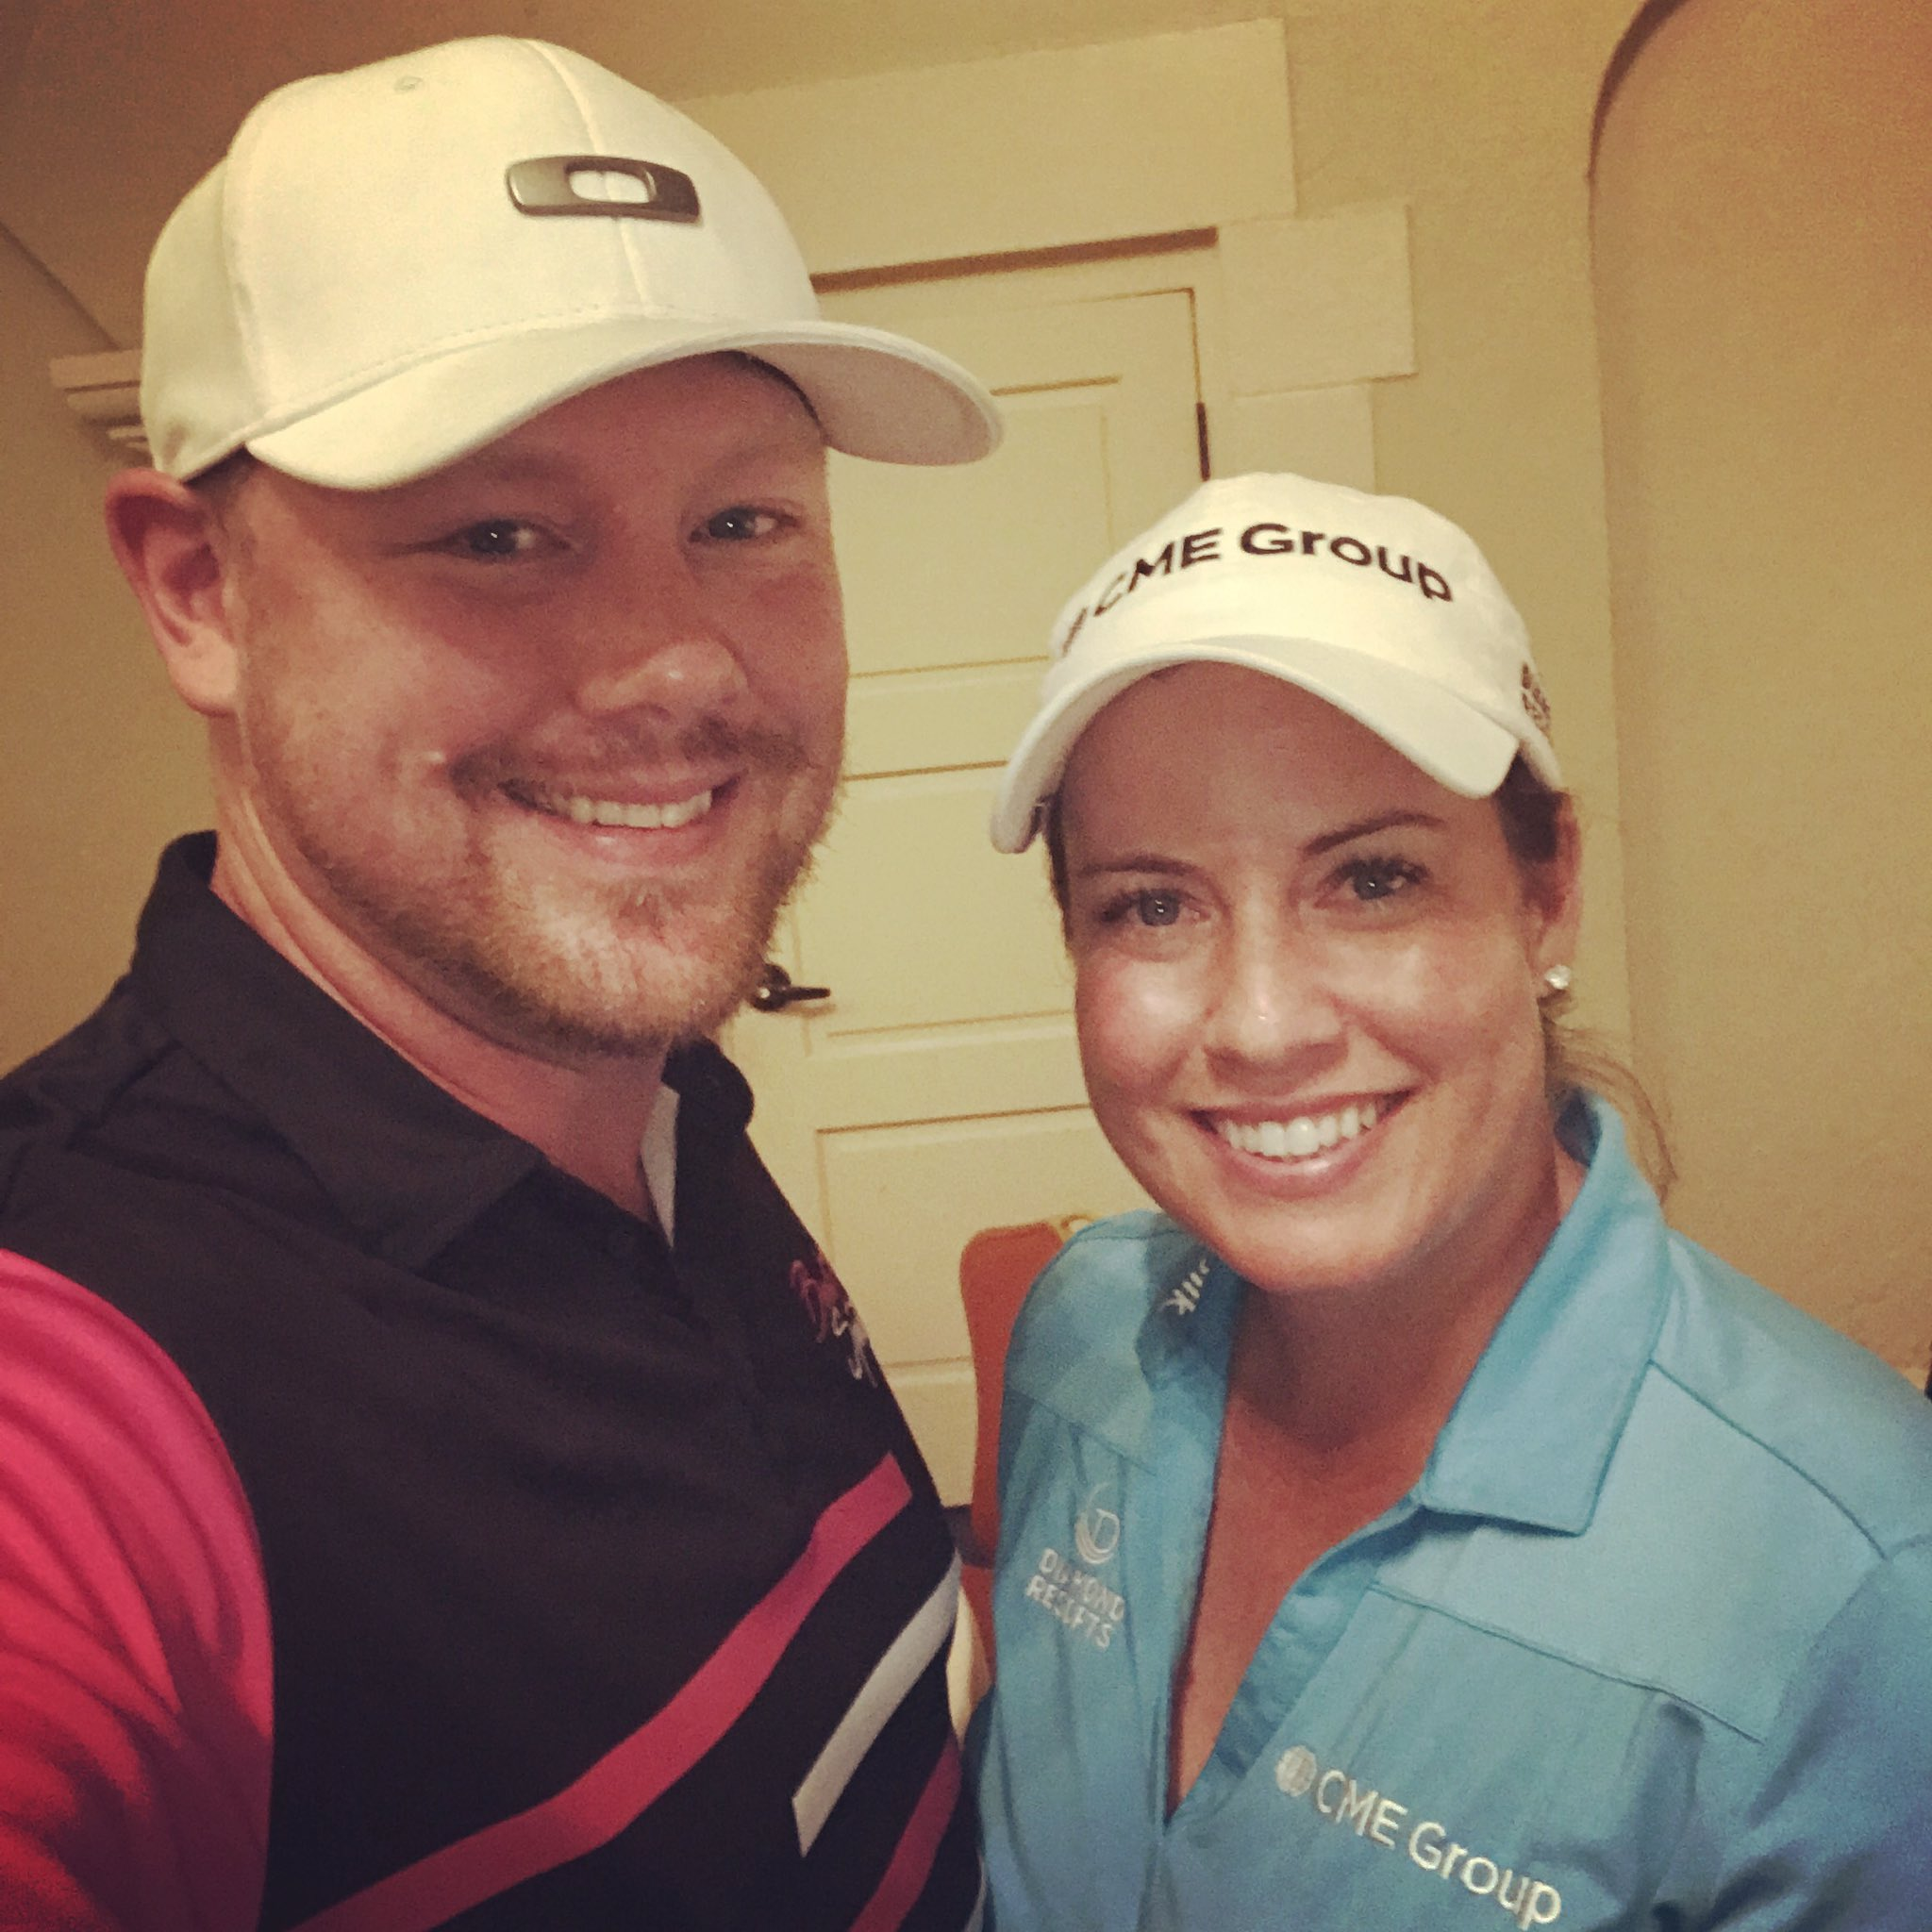 What a fun day with my bud @Brittany1golf at her celebrity event to benefit @TheFirstTee of St. Pete #bullzisports #forthekids #friends https://t.co/cpUHejVLnm